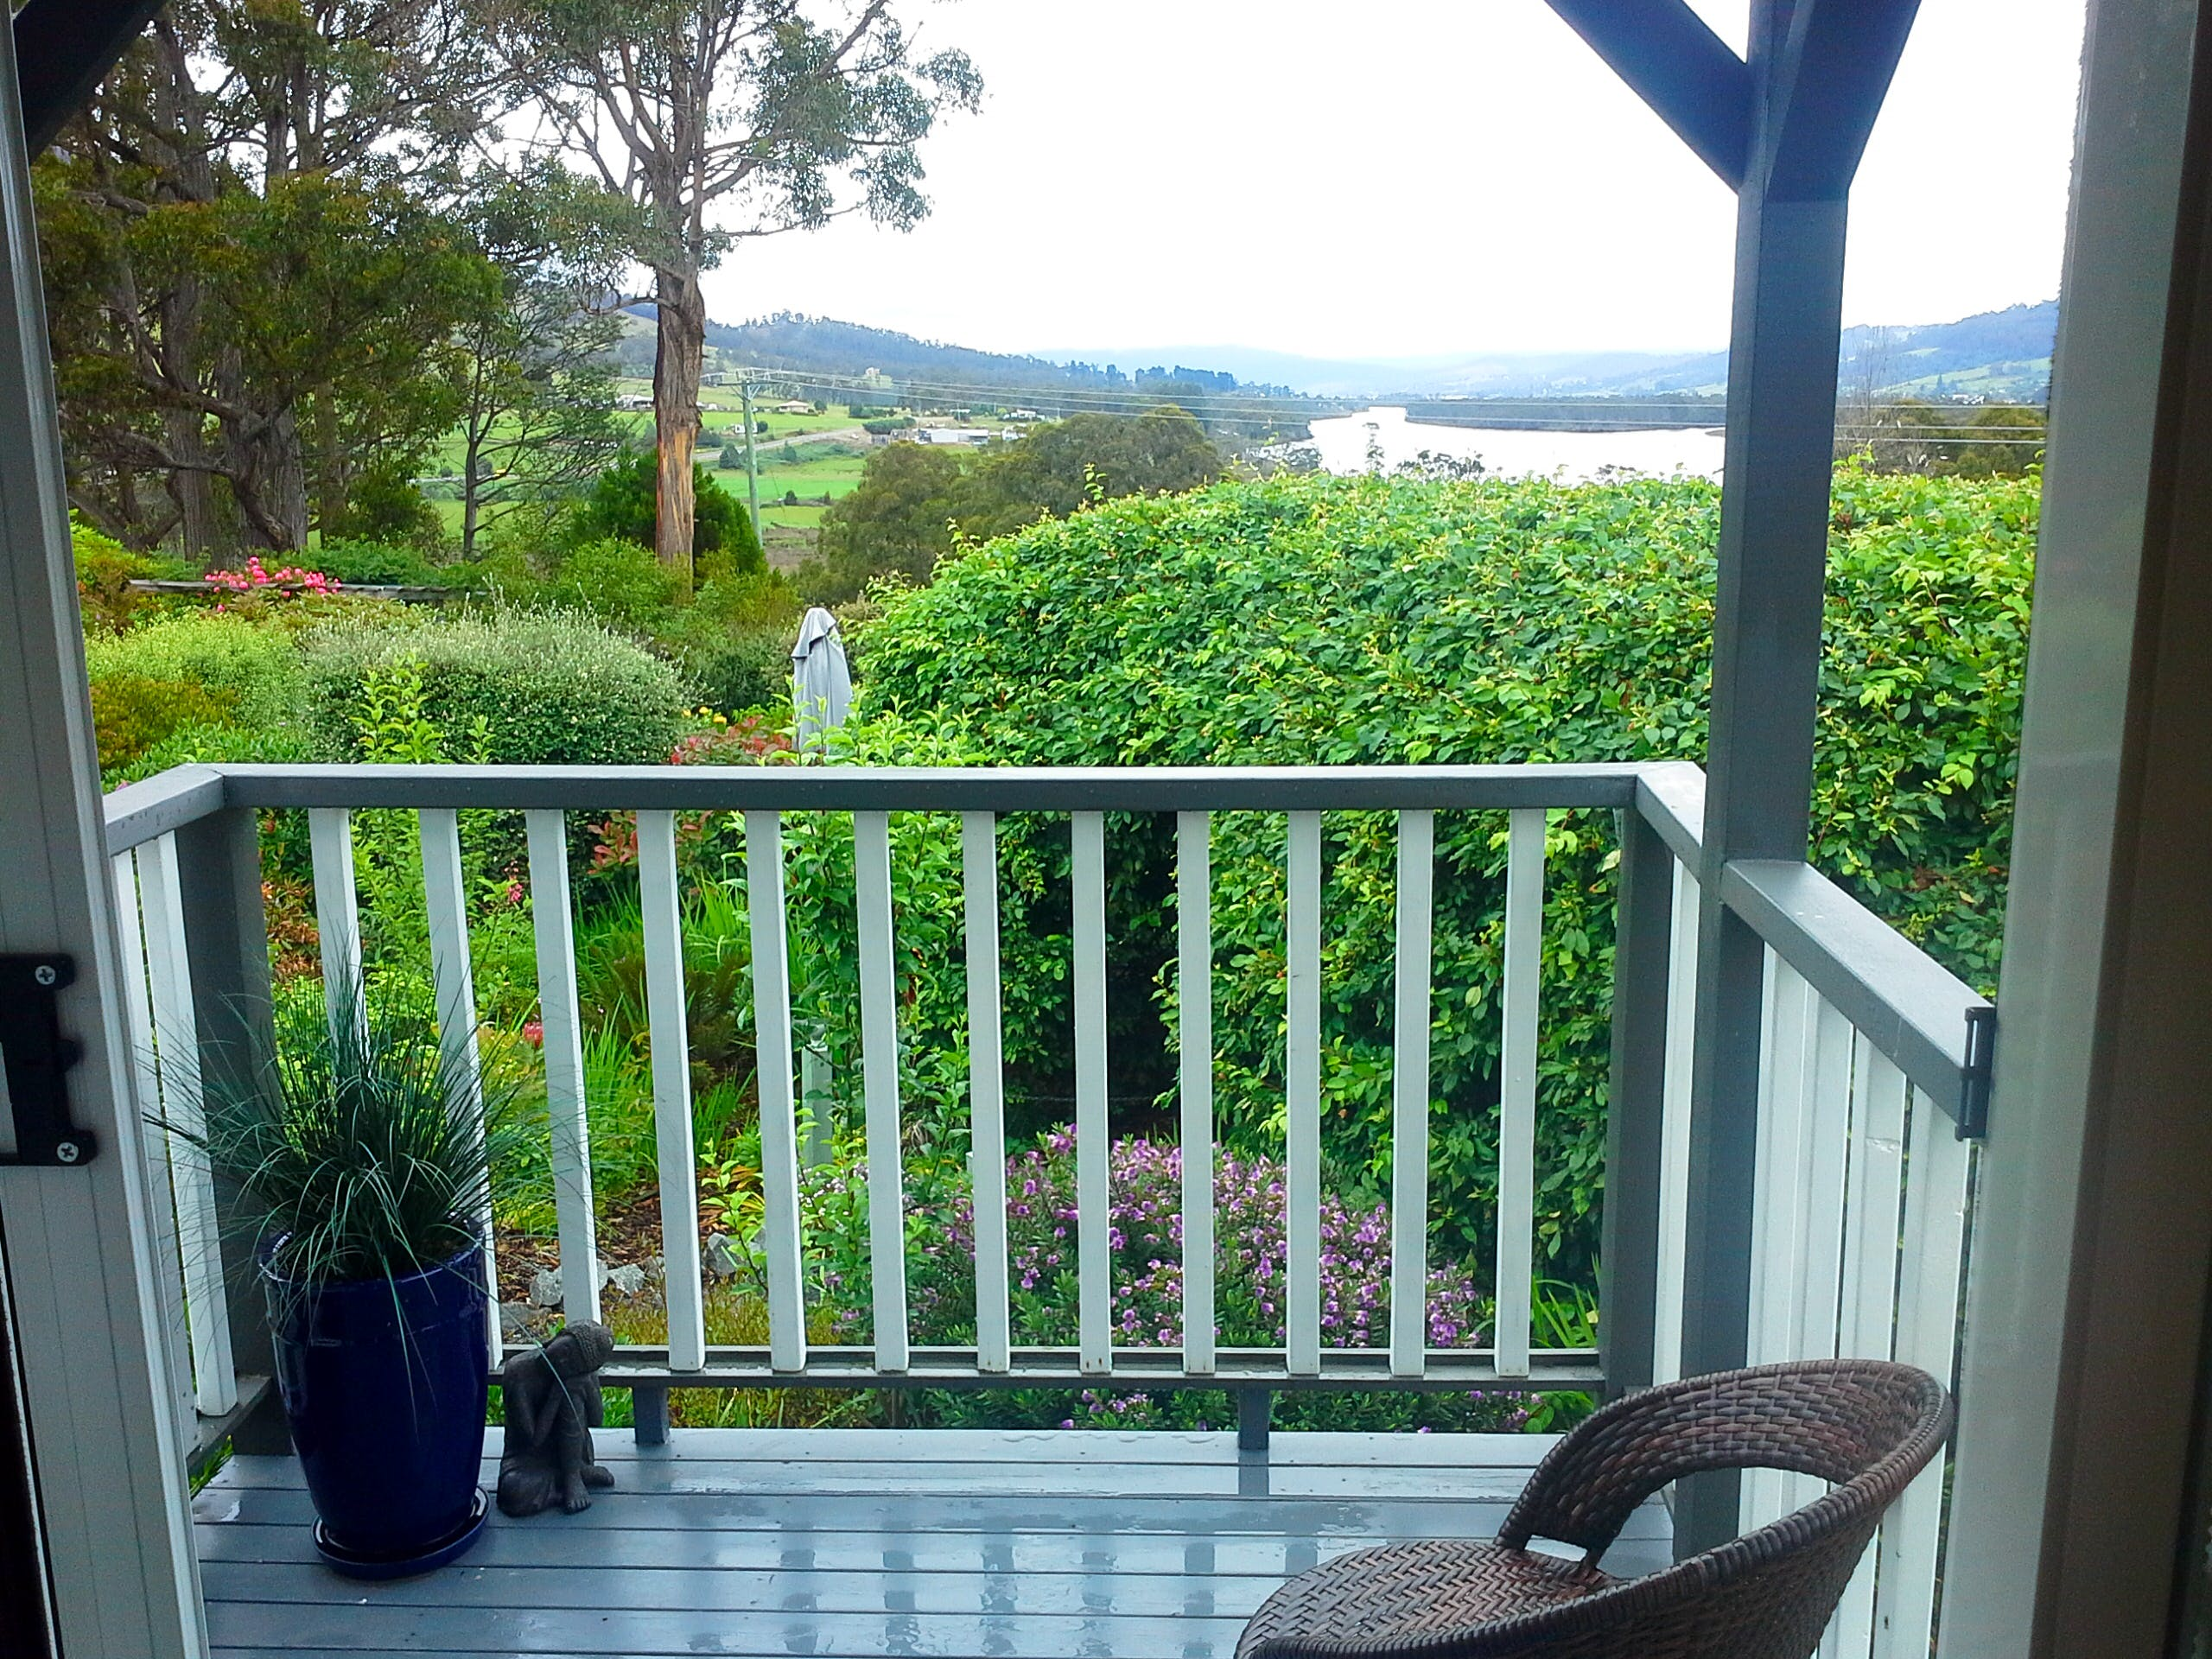 Huon River and Valley View at Hillside Bed & Breakfast Huonville Tasmania hillsidebedandbreakfasthuonvalley.com